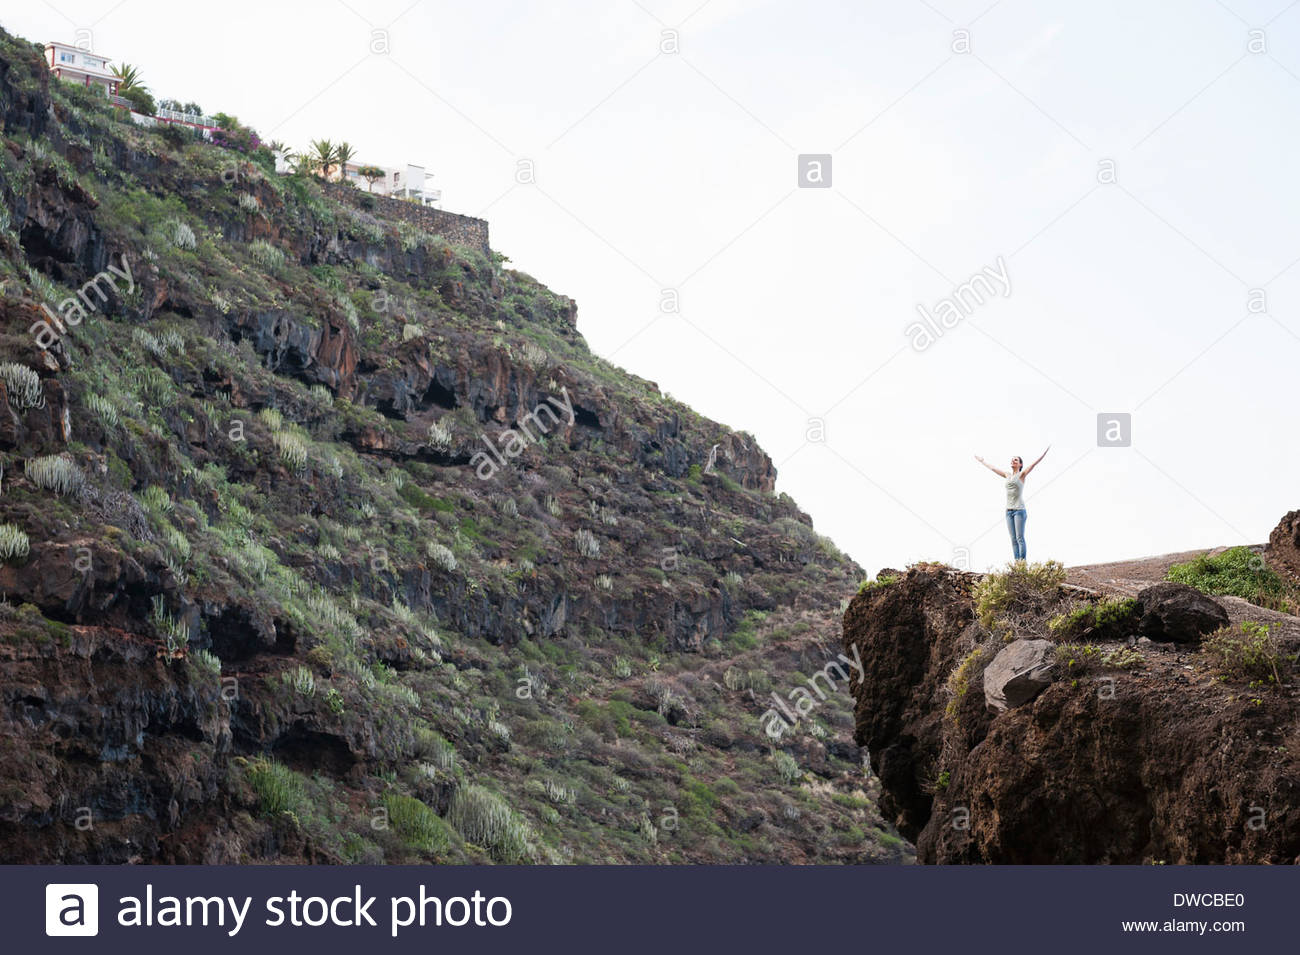 Walker with arms outstretched, Tenerife, Spain - Stock Image